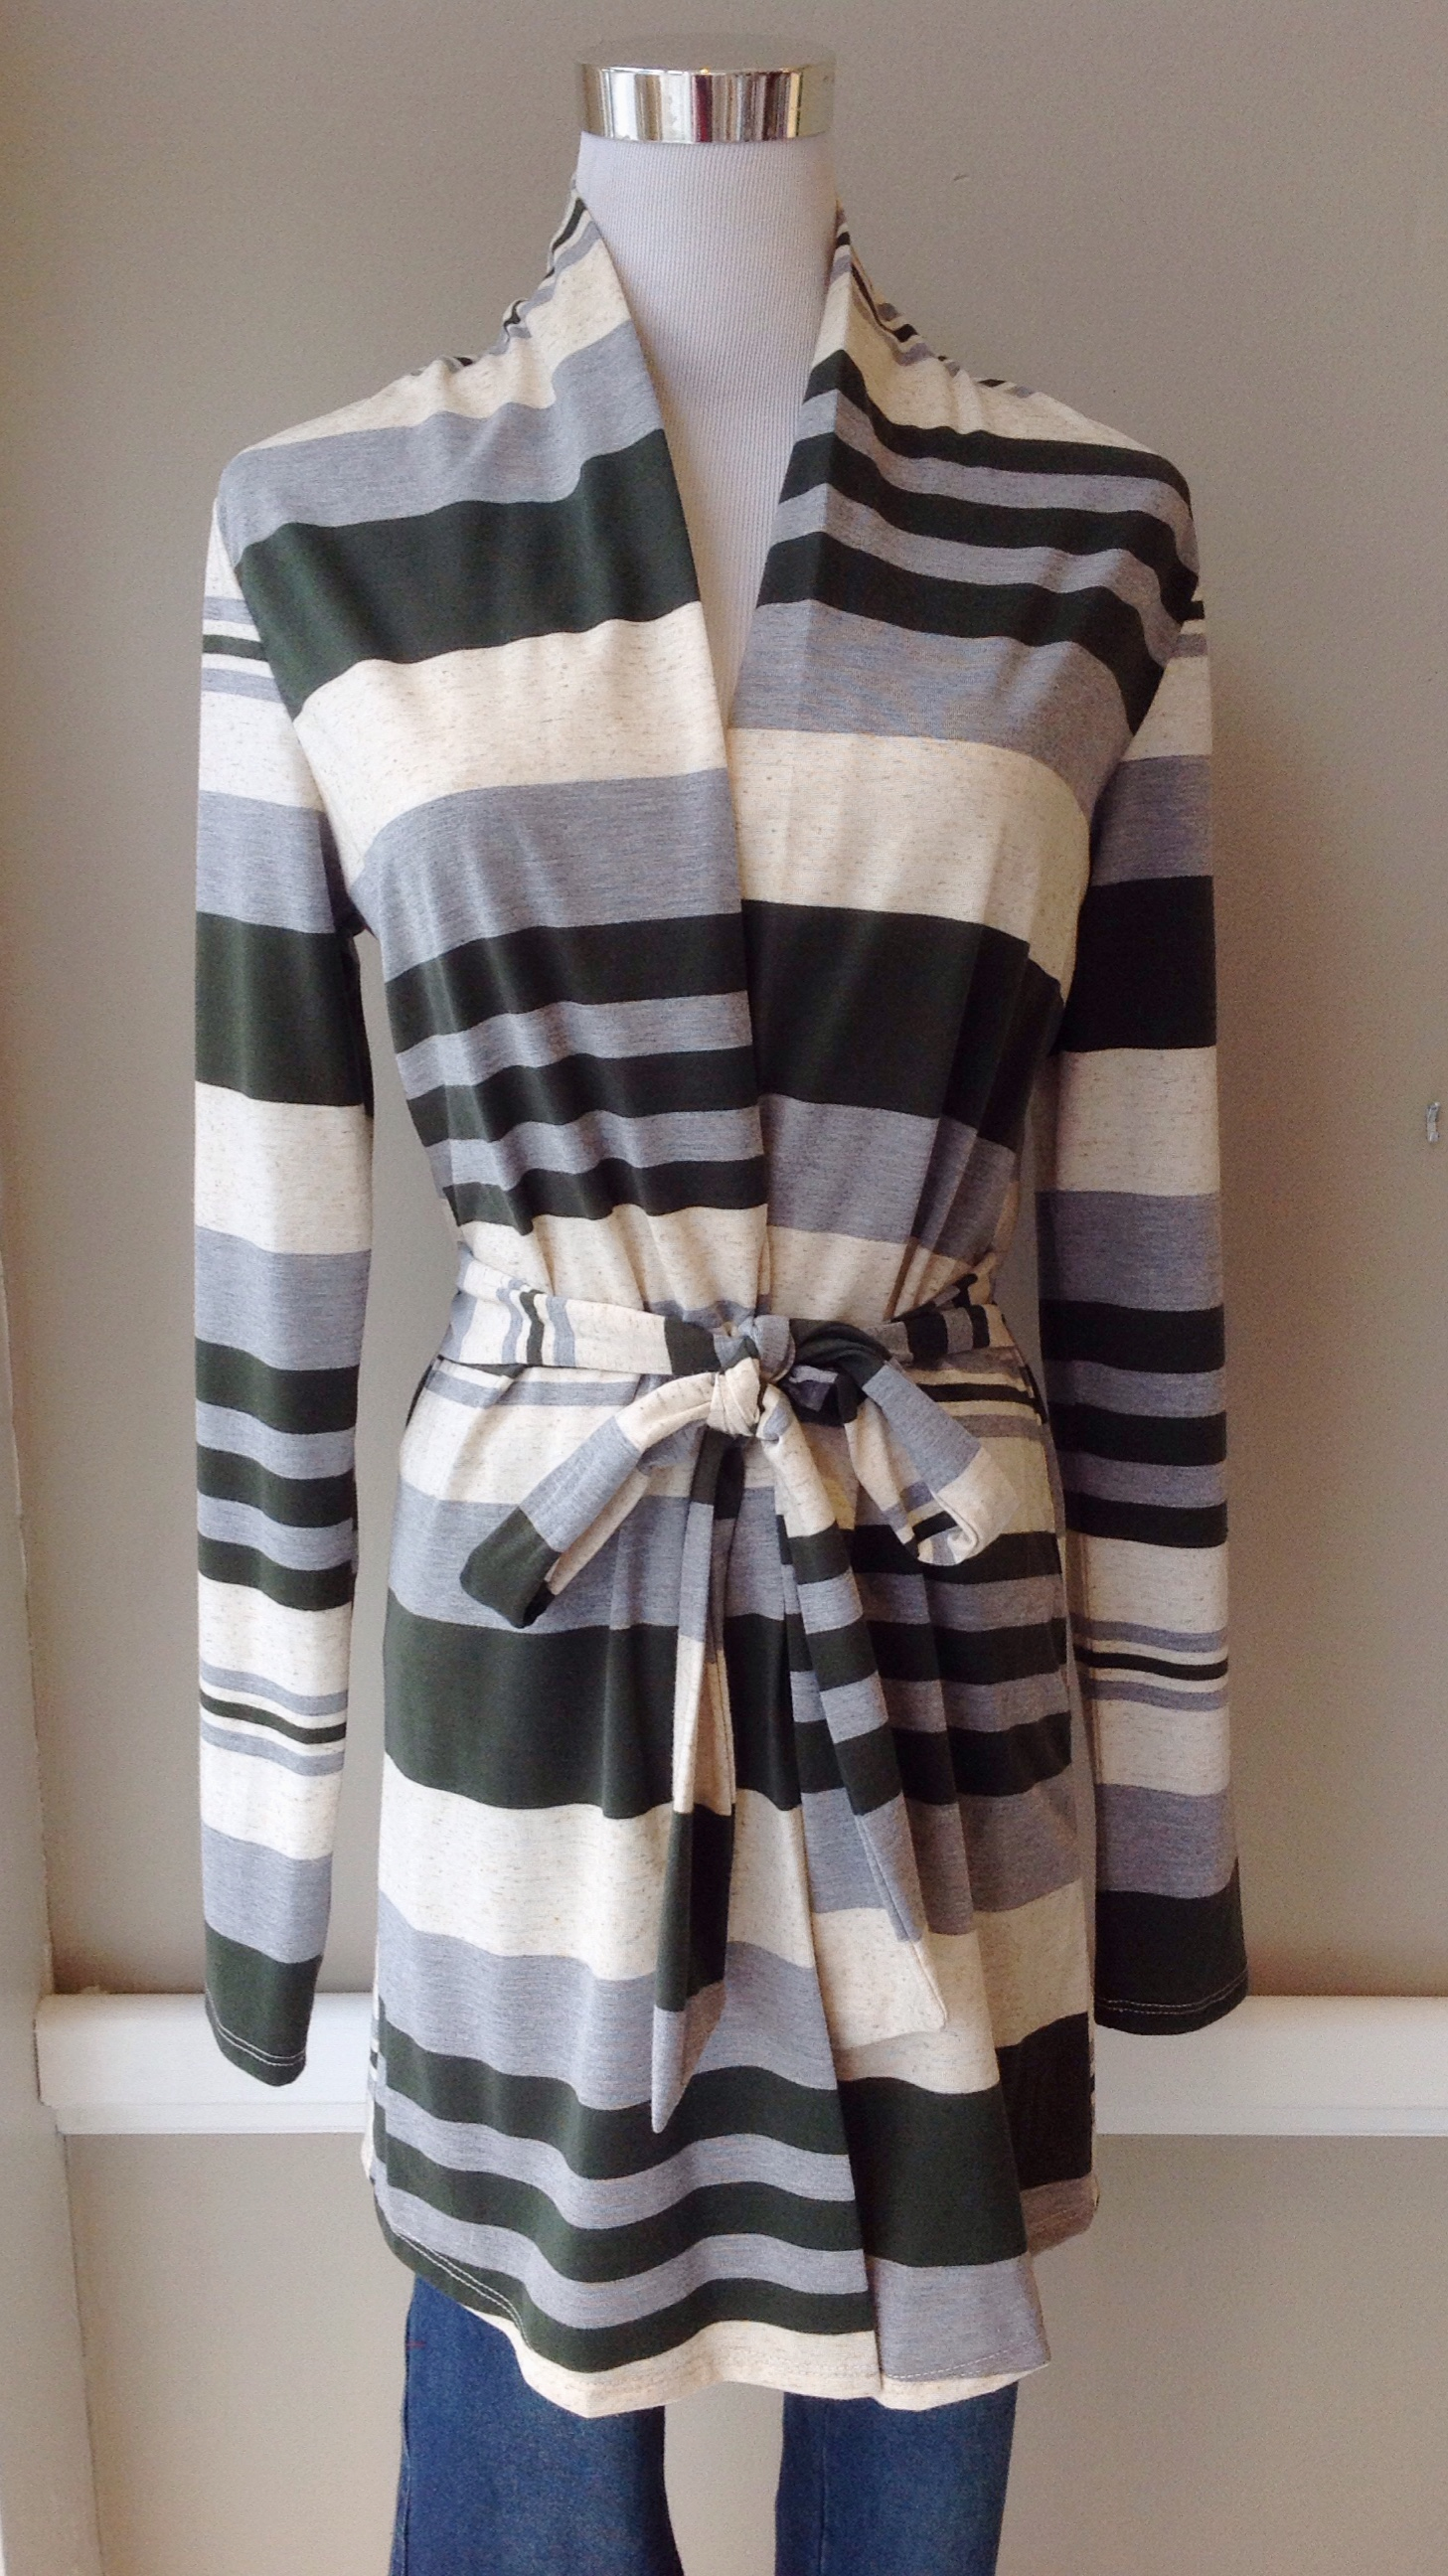 Stripe belted cardigan in olive/grey/ivory,   $34